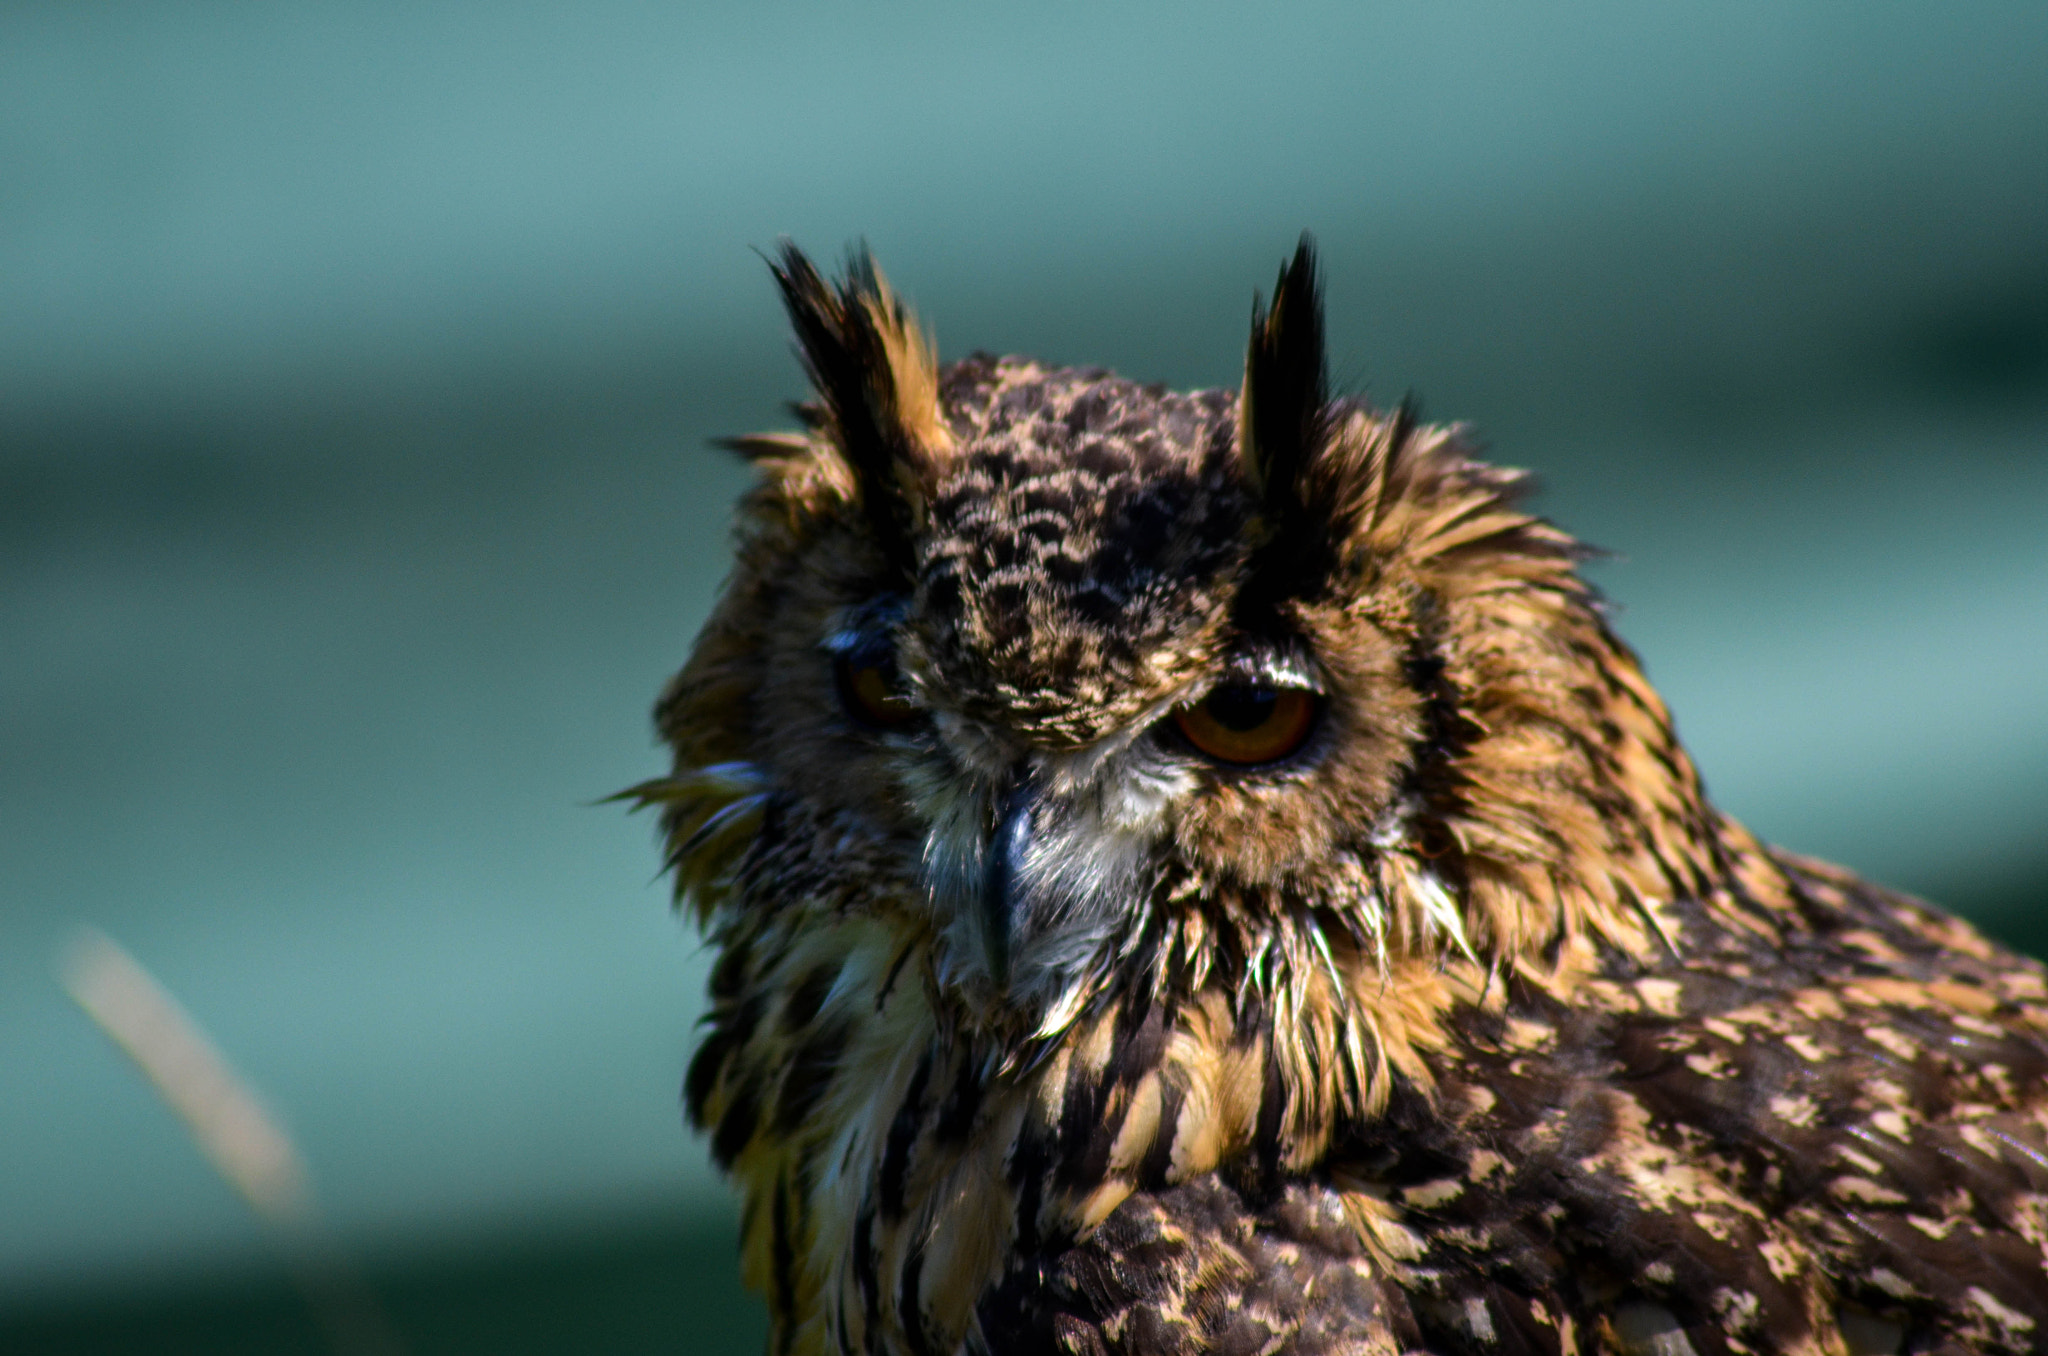 Photograph Bengal eagle Owl by julian john on 500px